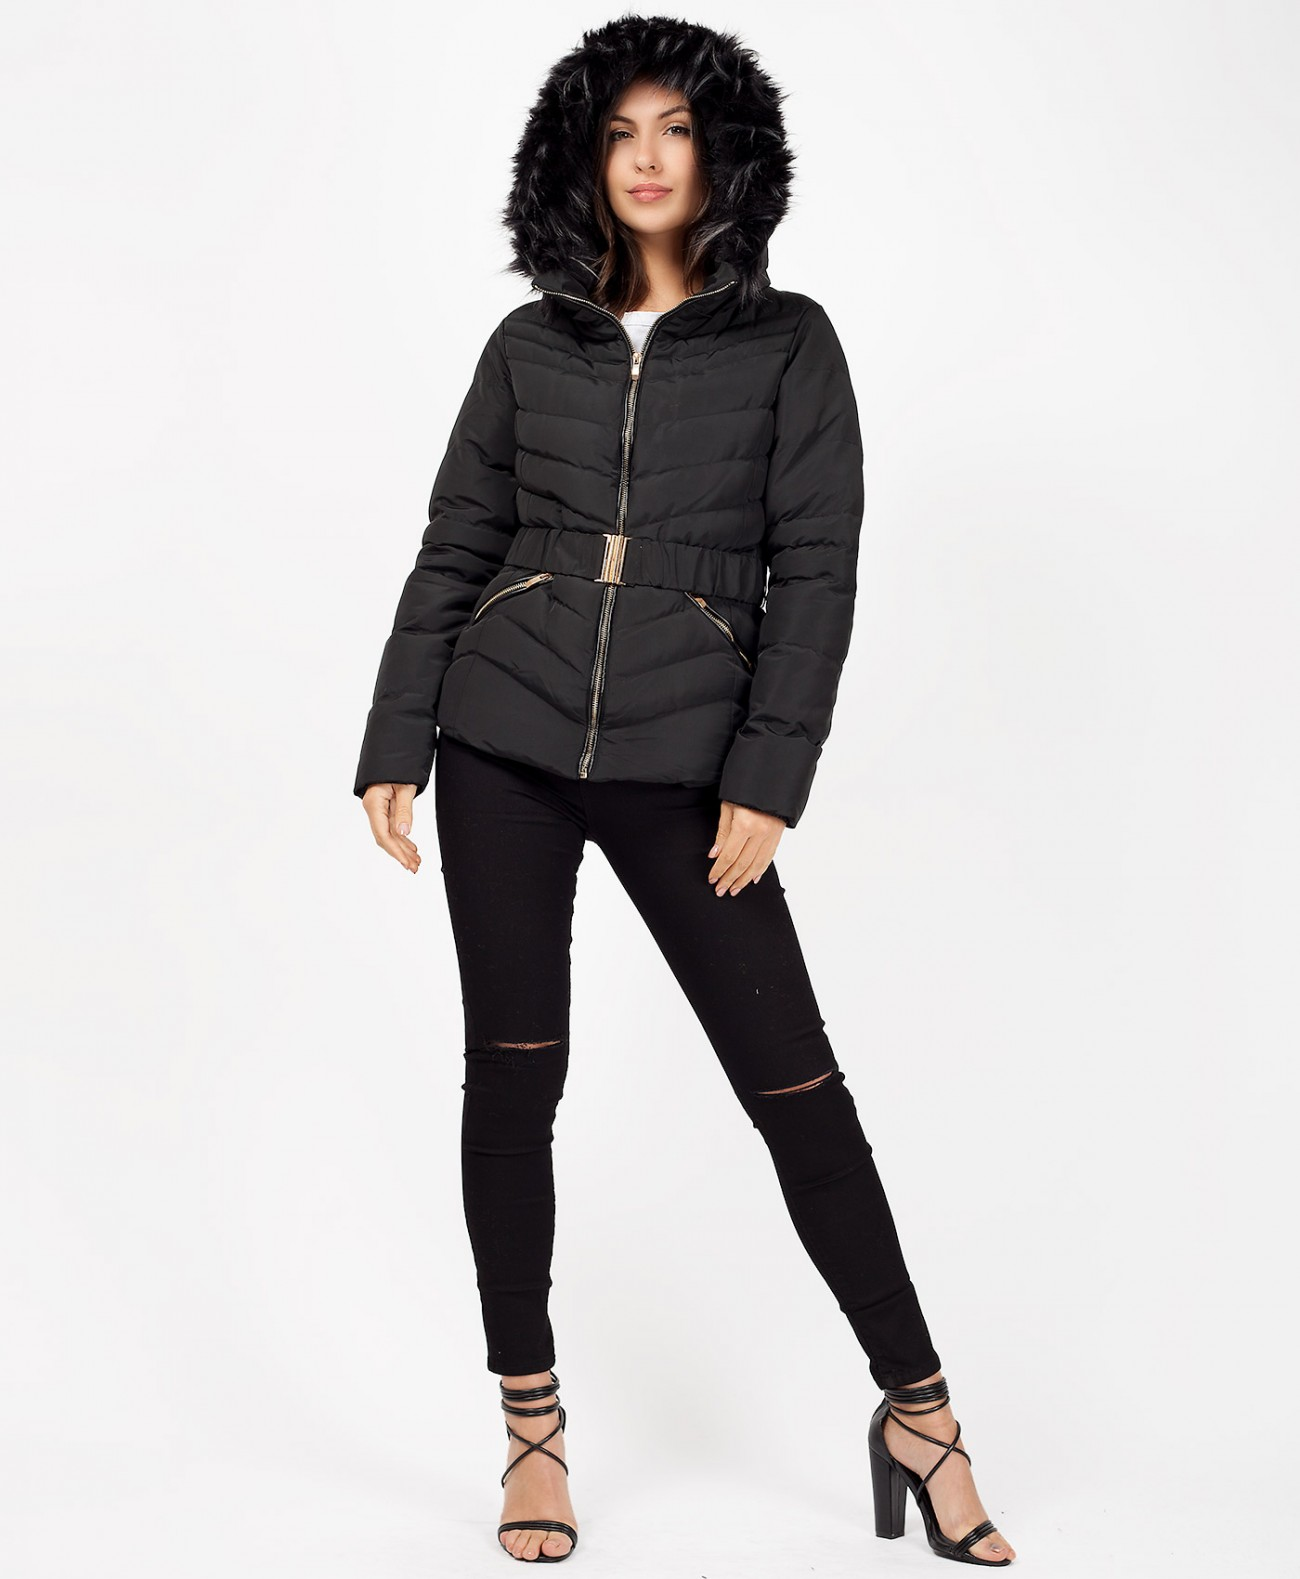 65de97152 Black Faux Fur Hooded Quilted Clasp Belt Puffer Jacket